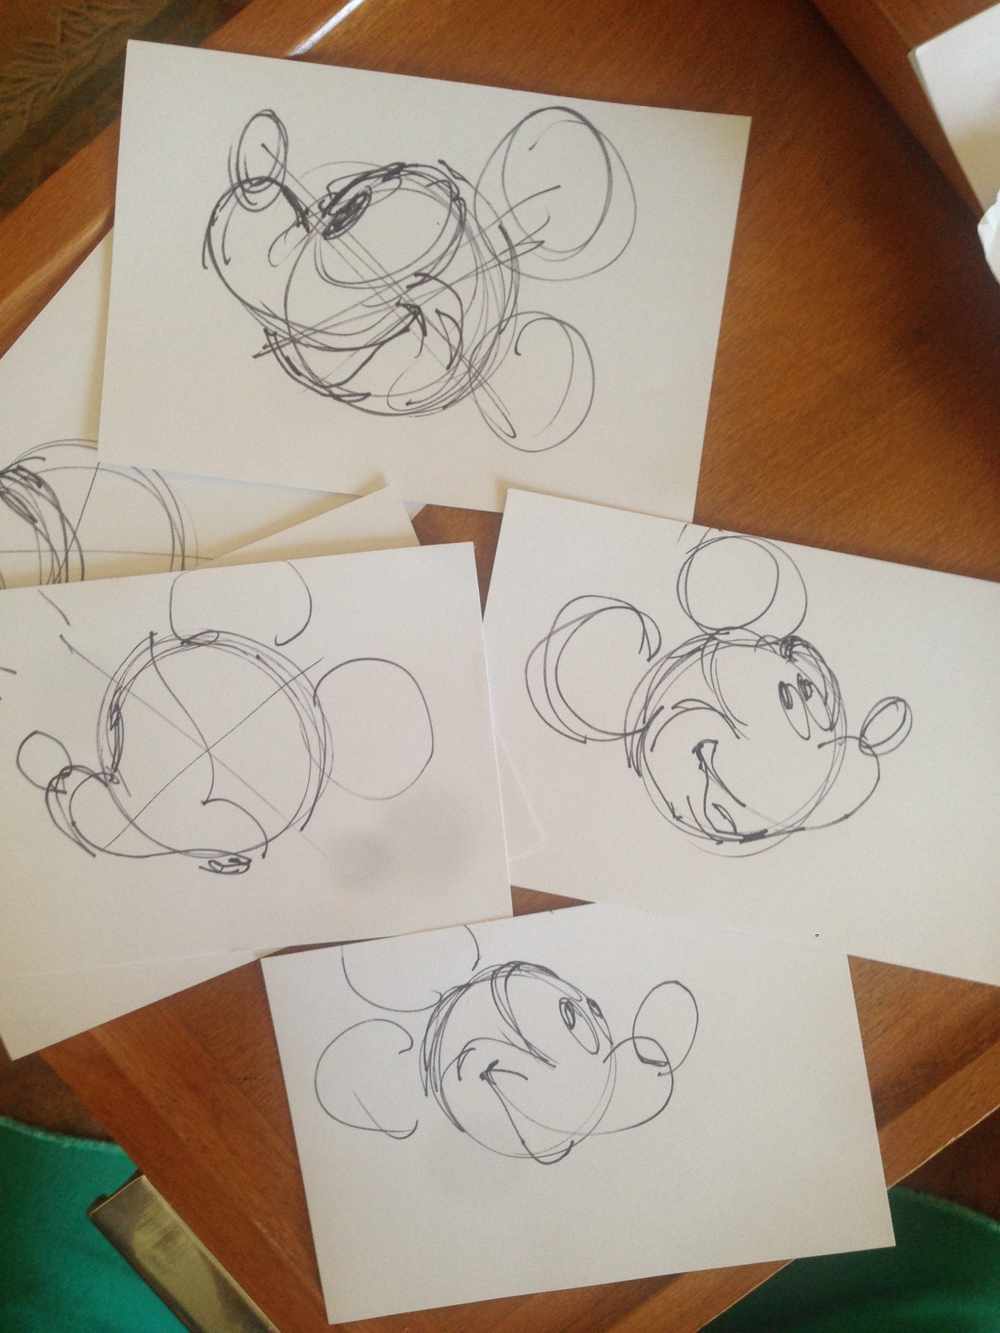 I had to practice drawing Mickey if I was going to have to draw him on camera.